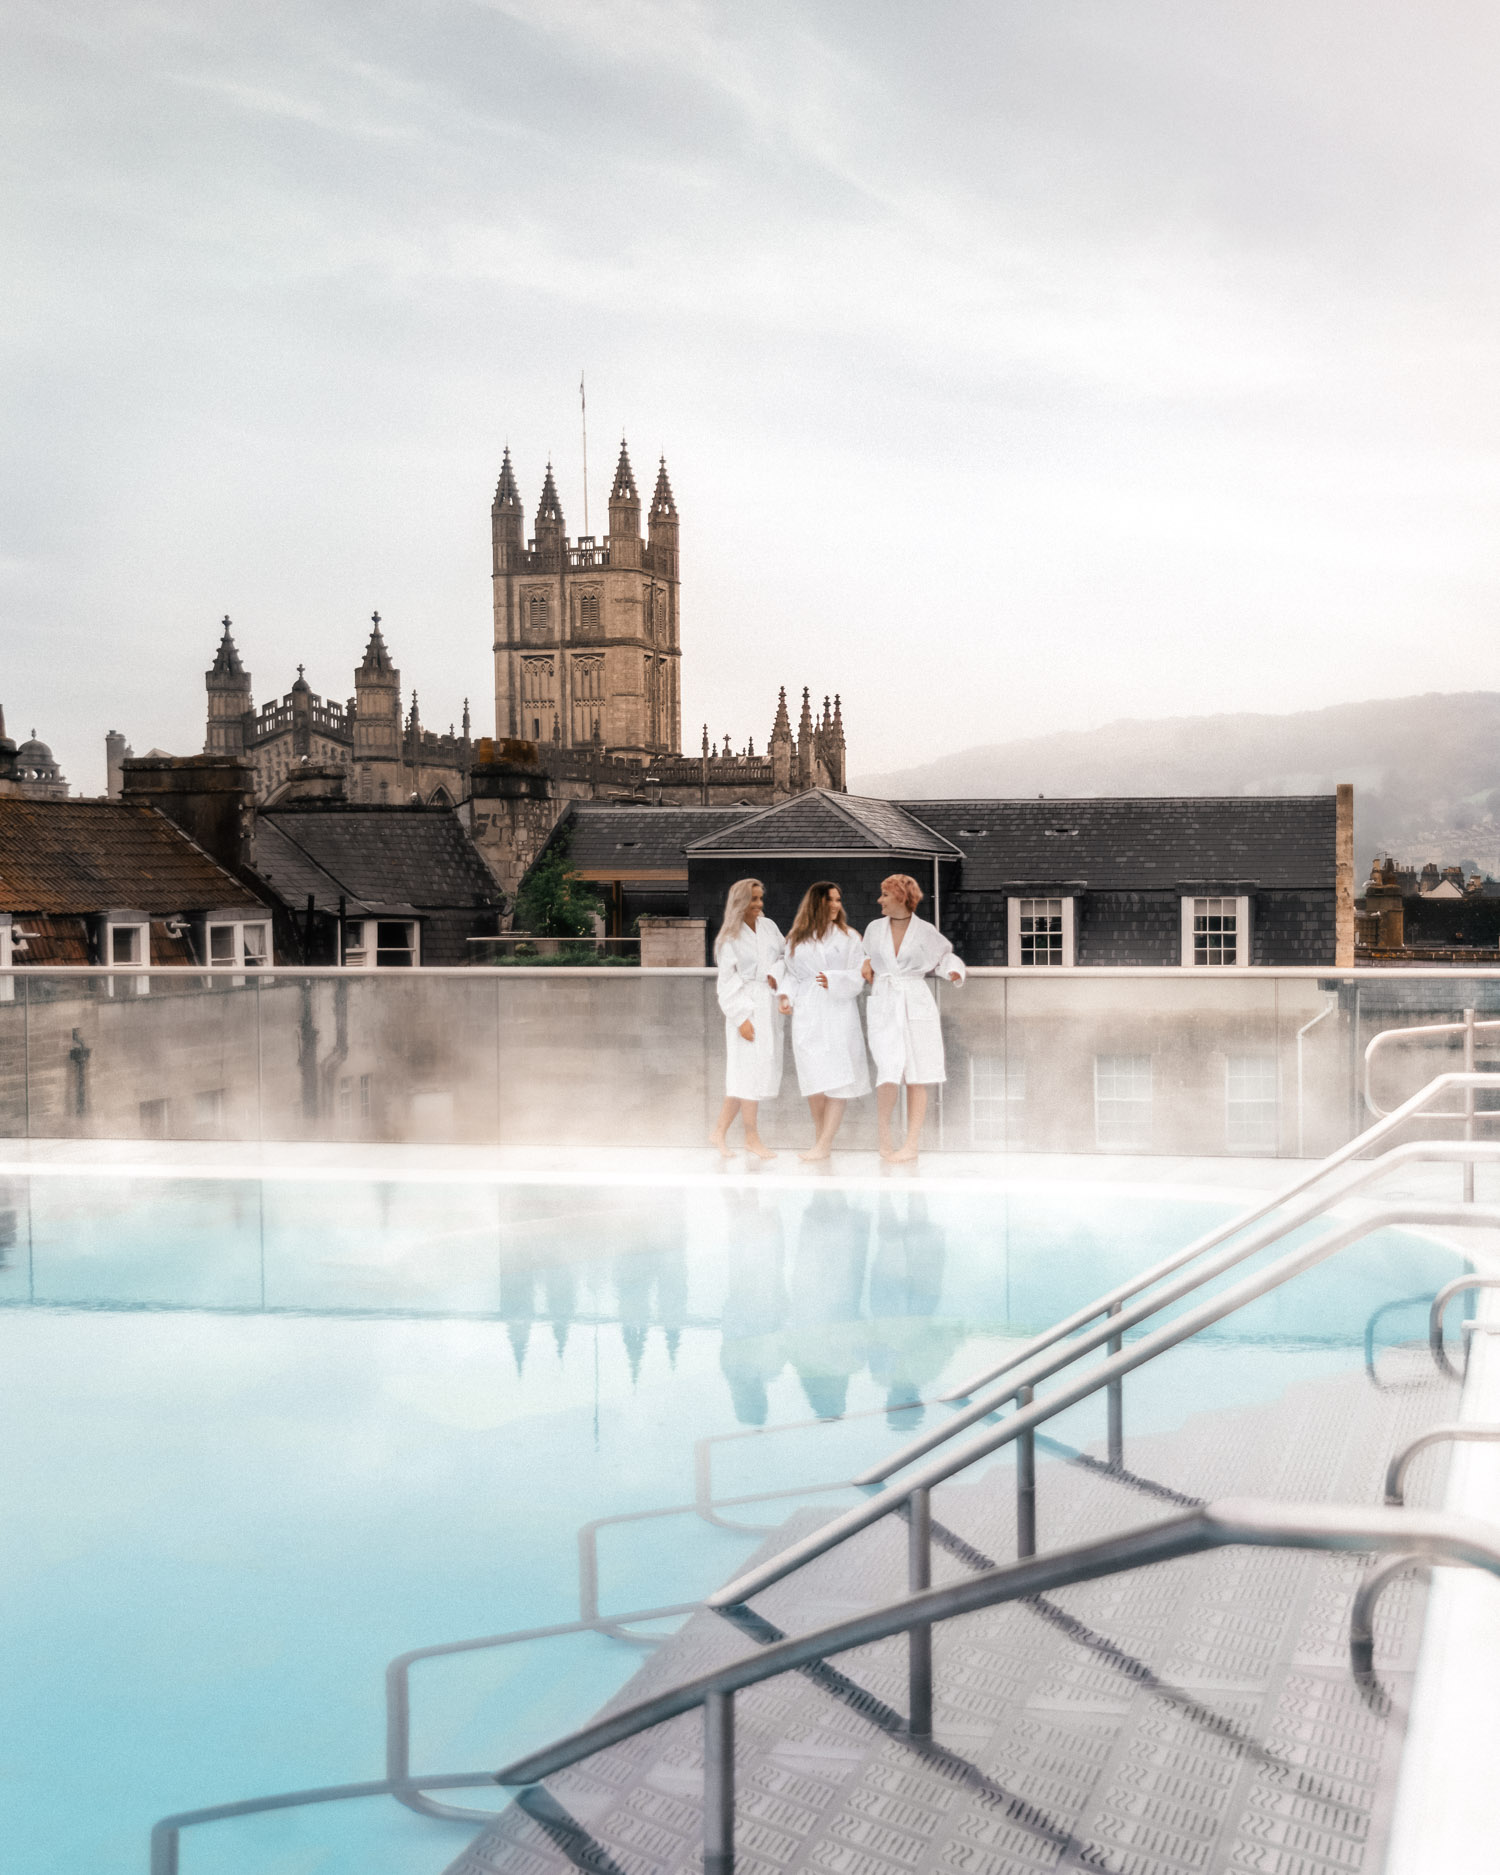 Thermae Bath Spa in Bath, England